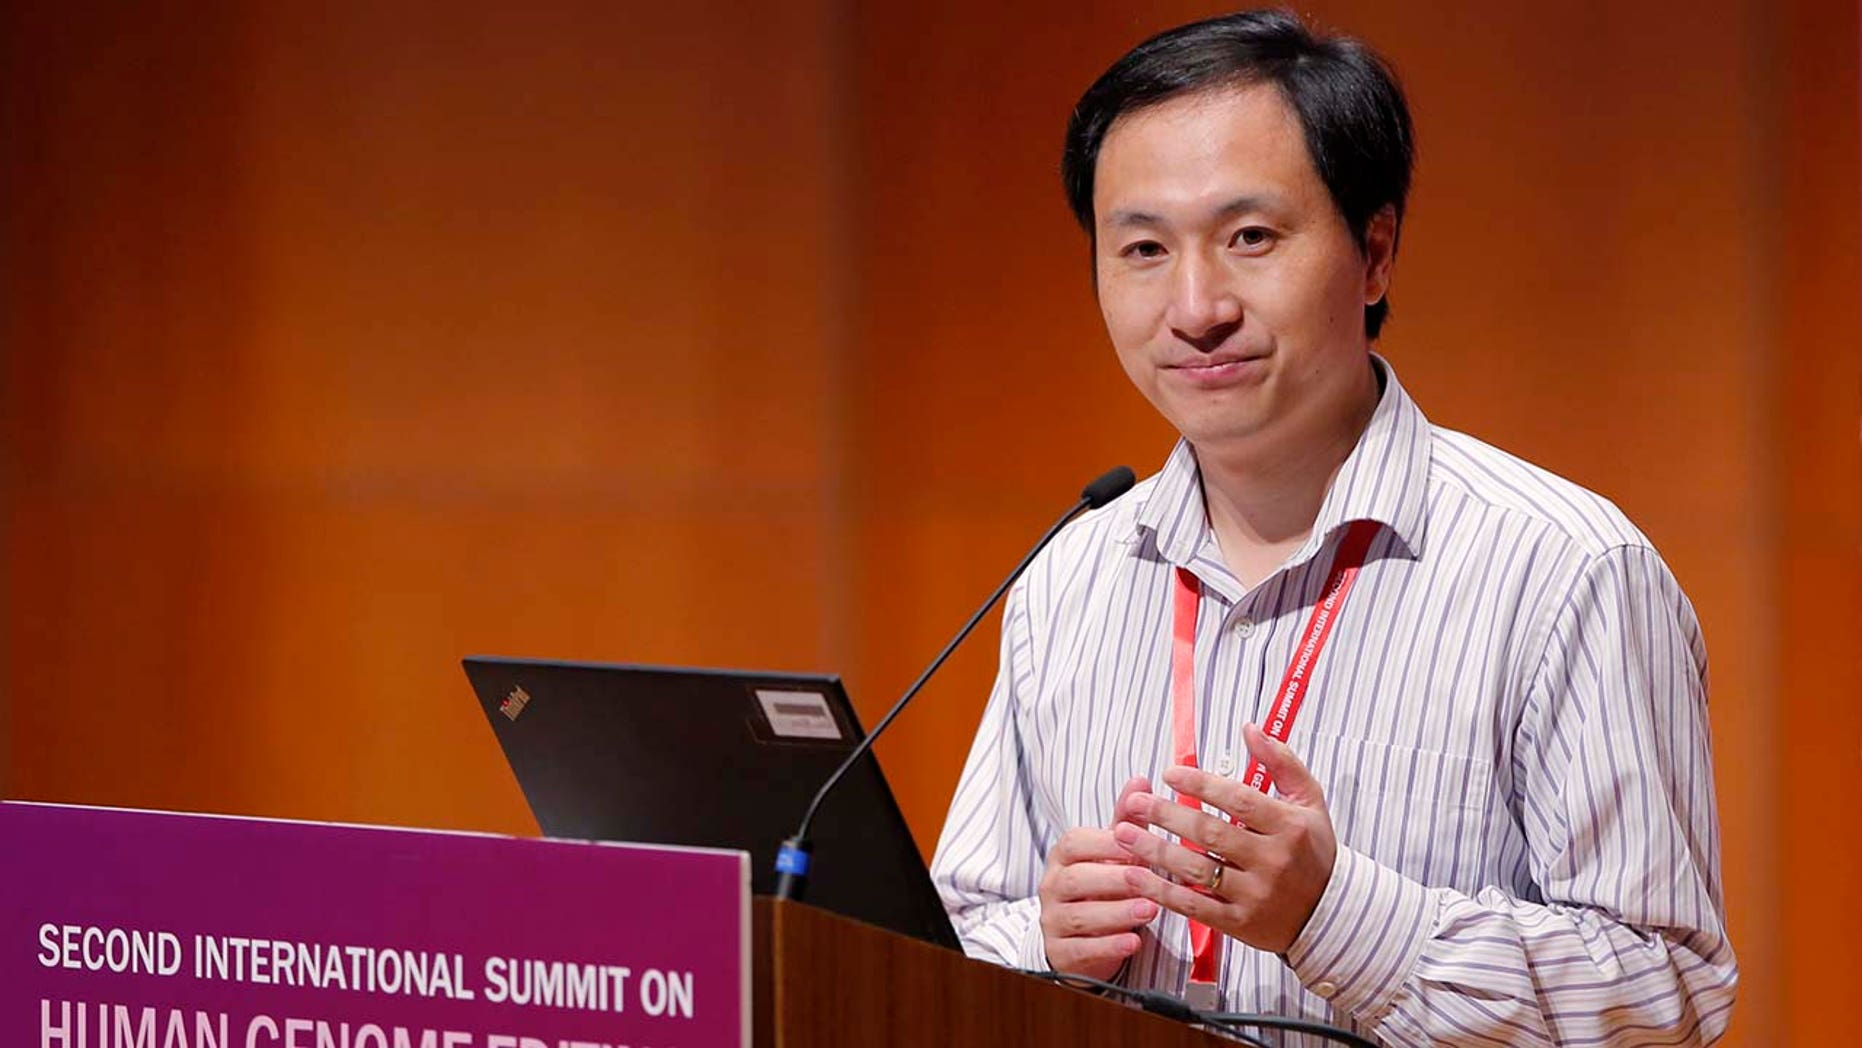 He Jiankui, Chinese researcher, speaks at the Human Genome Publishing Conference in Hong Kong on Wednesday, November 28, 2018. (AP Photo / Kin Cheung)